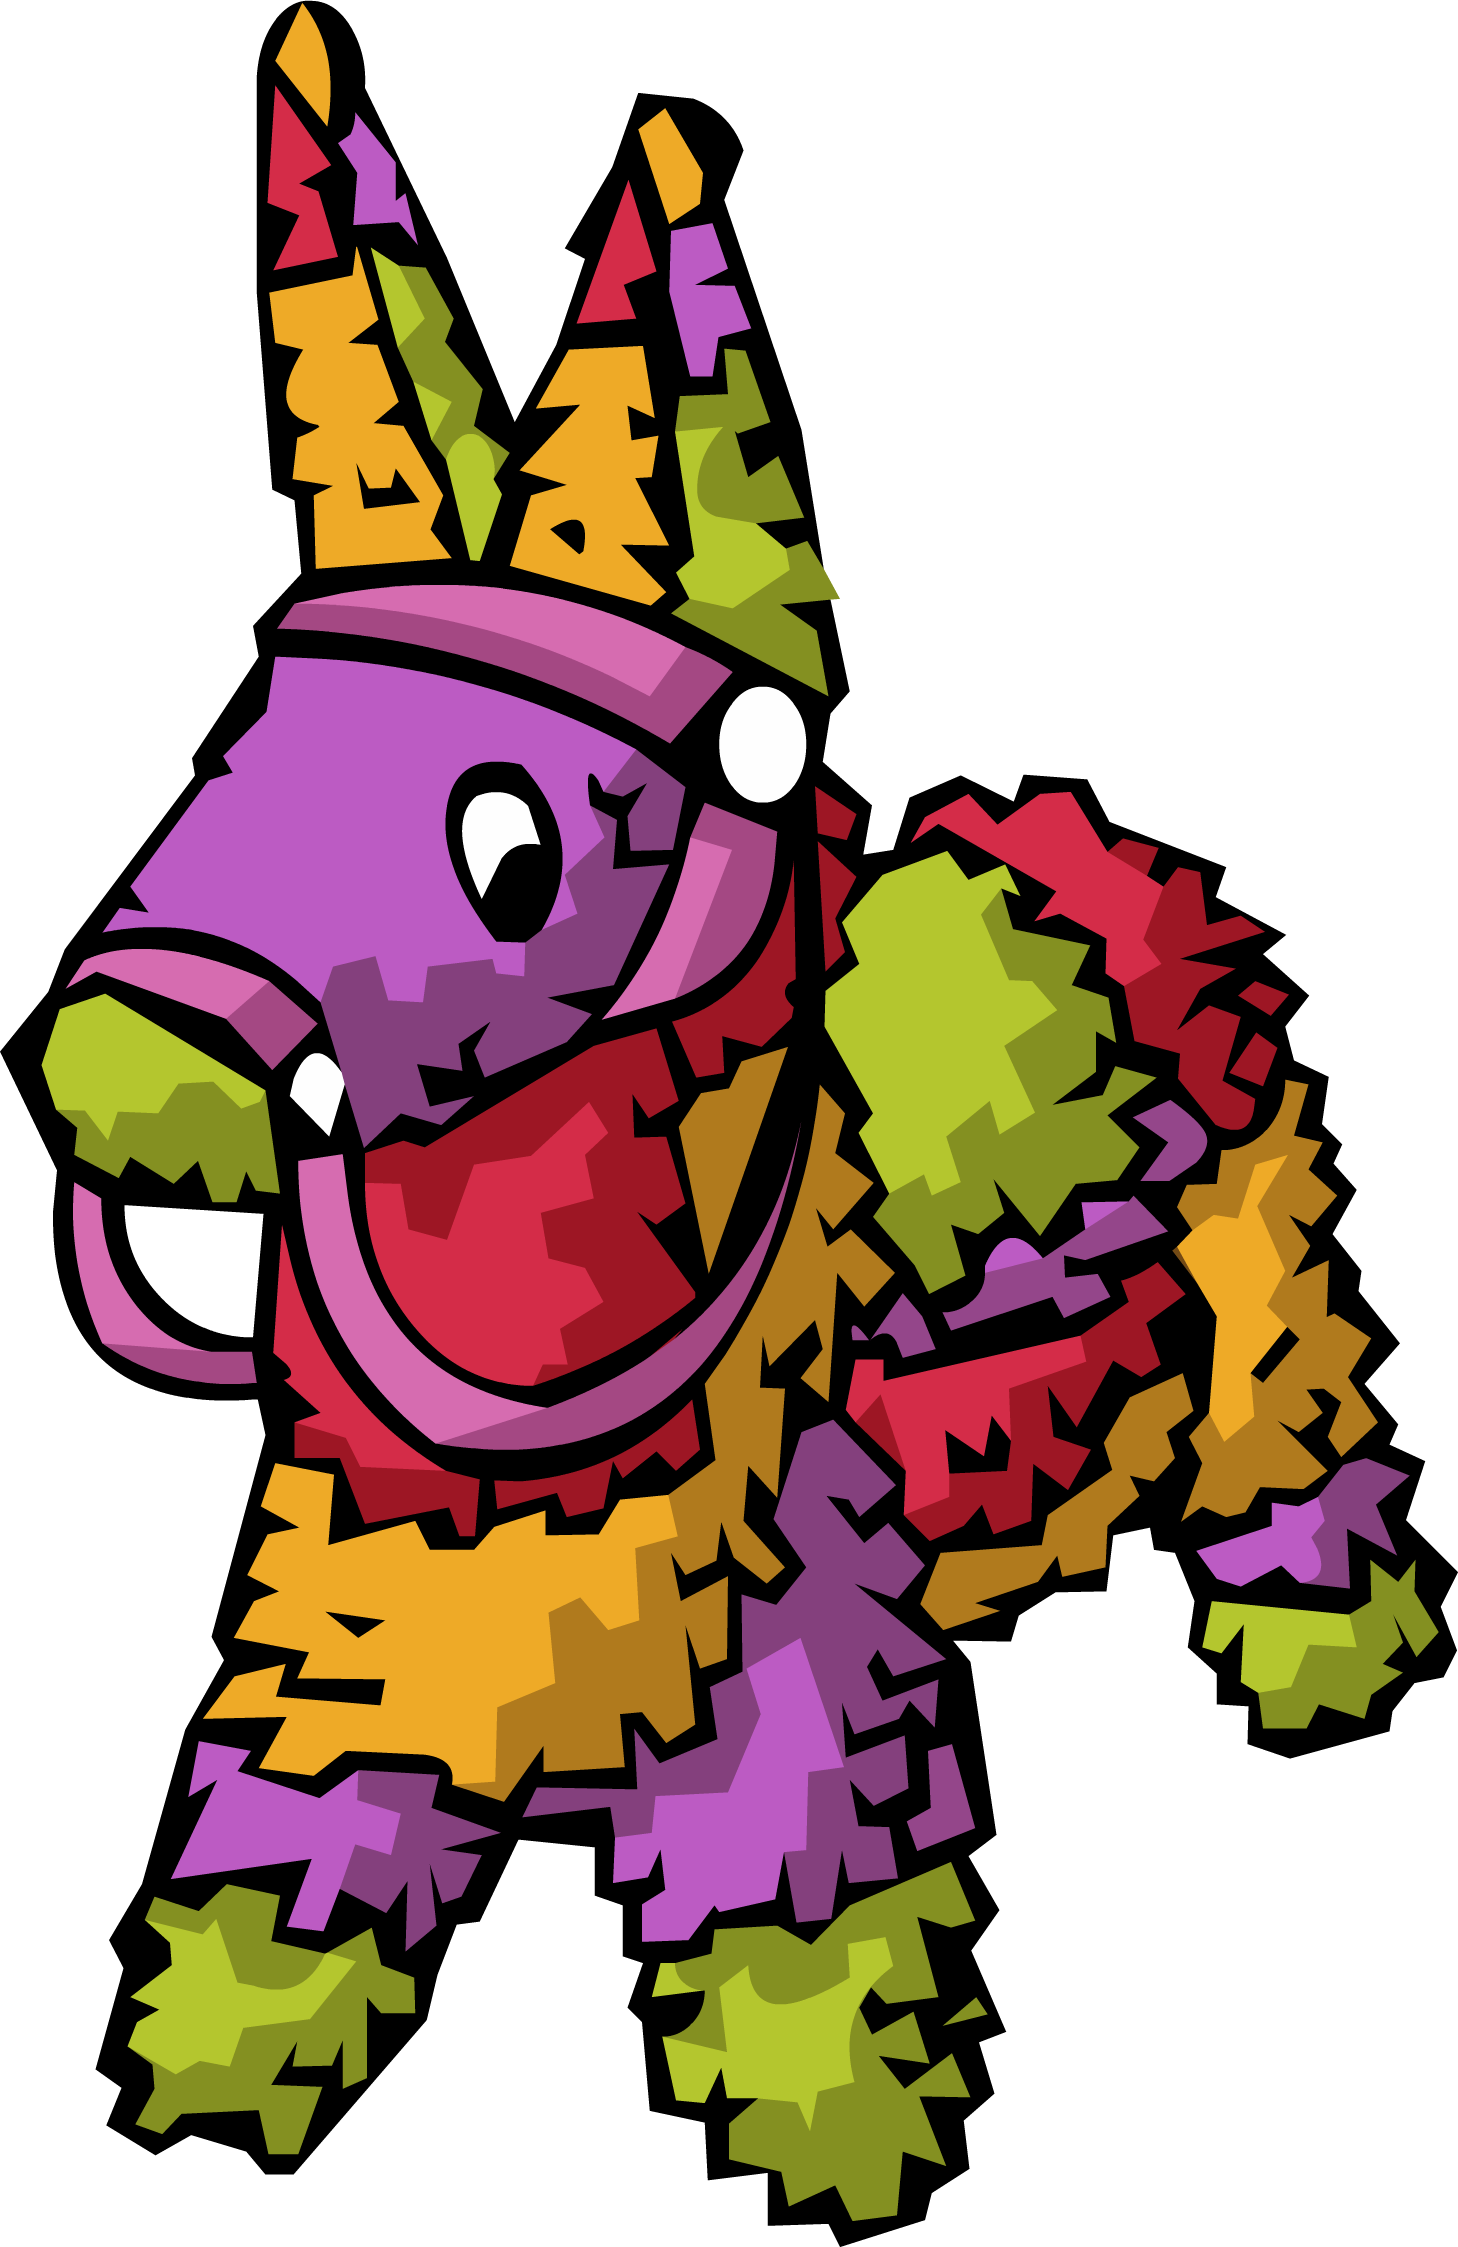 Image png club penguin. Pinata transparent jpg royalty free stock